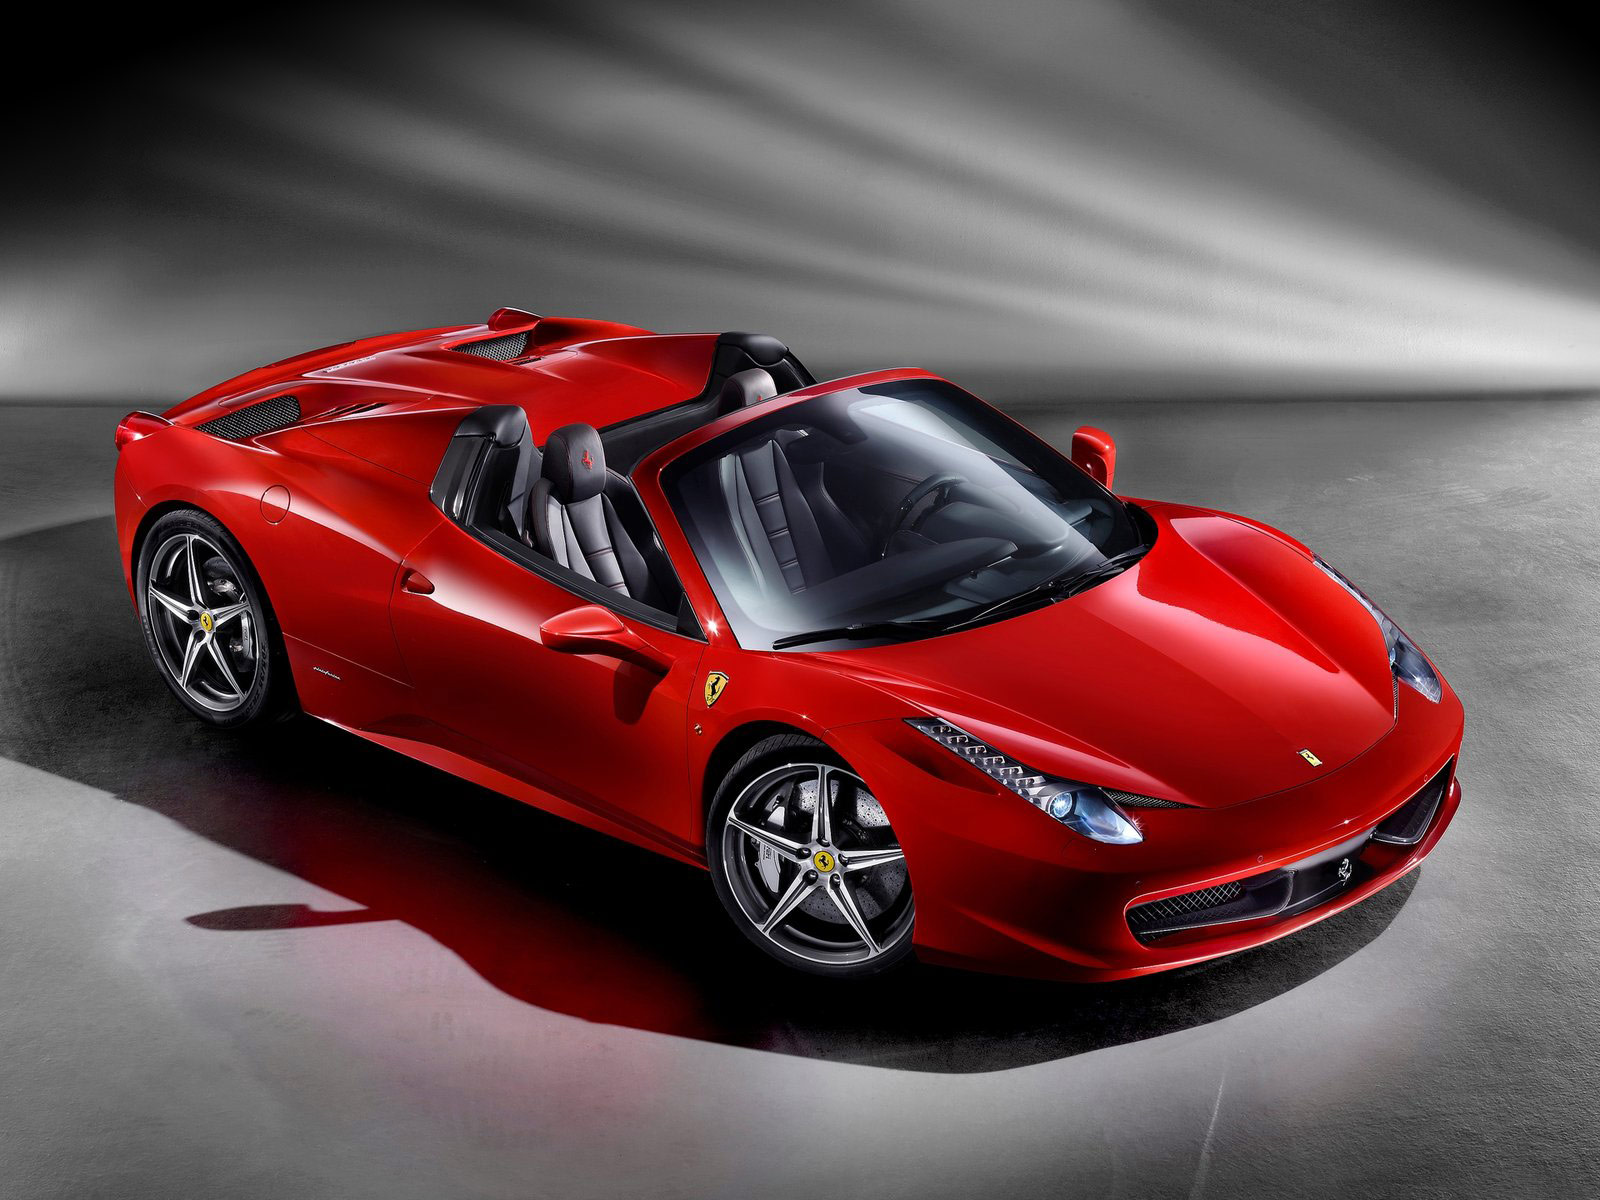 foto mobil sport ferrari 458 spider 2013. Black Bedroom Furniture Sets. Home Design Ideas